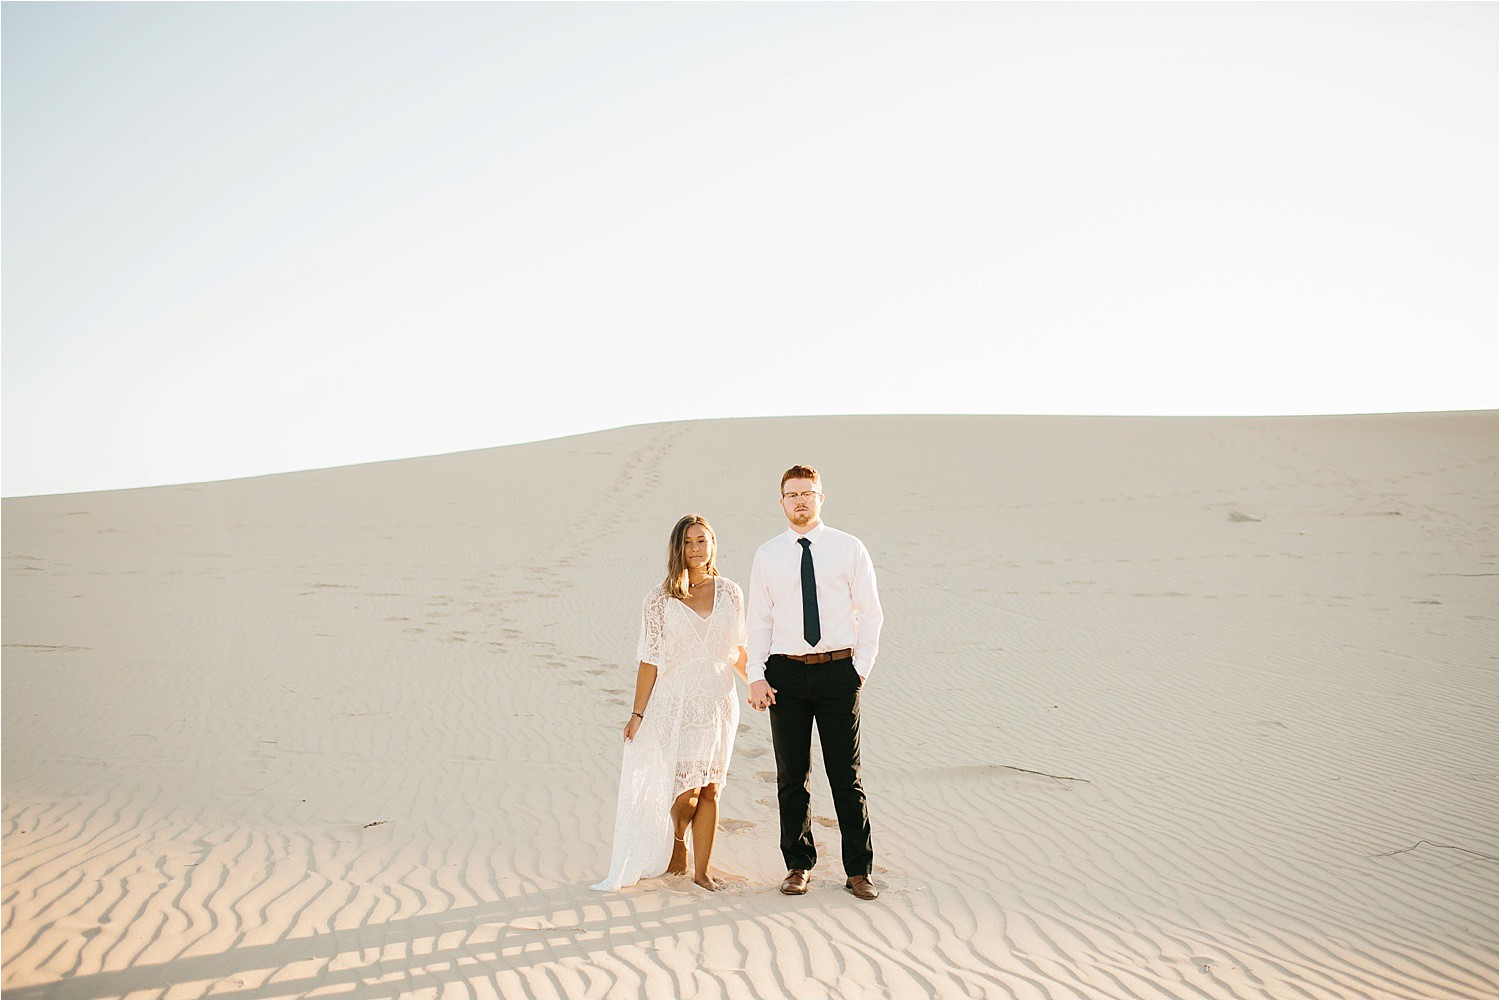 Lauren + Jacob __ a monahans sand dunes engagement session at sunrise by North Texas Wedding Photographer, Rachel Meagan Photography __ 29